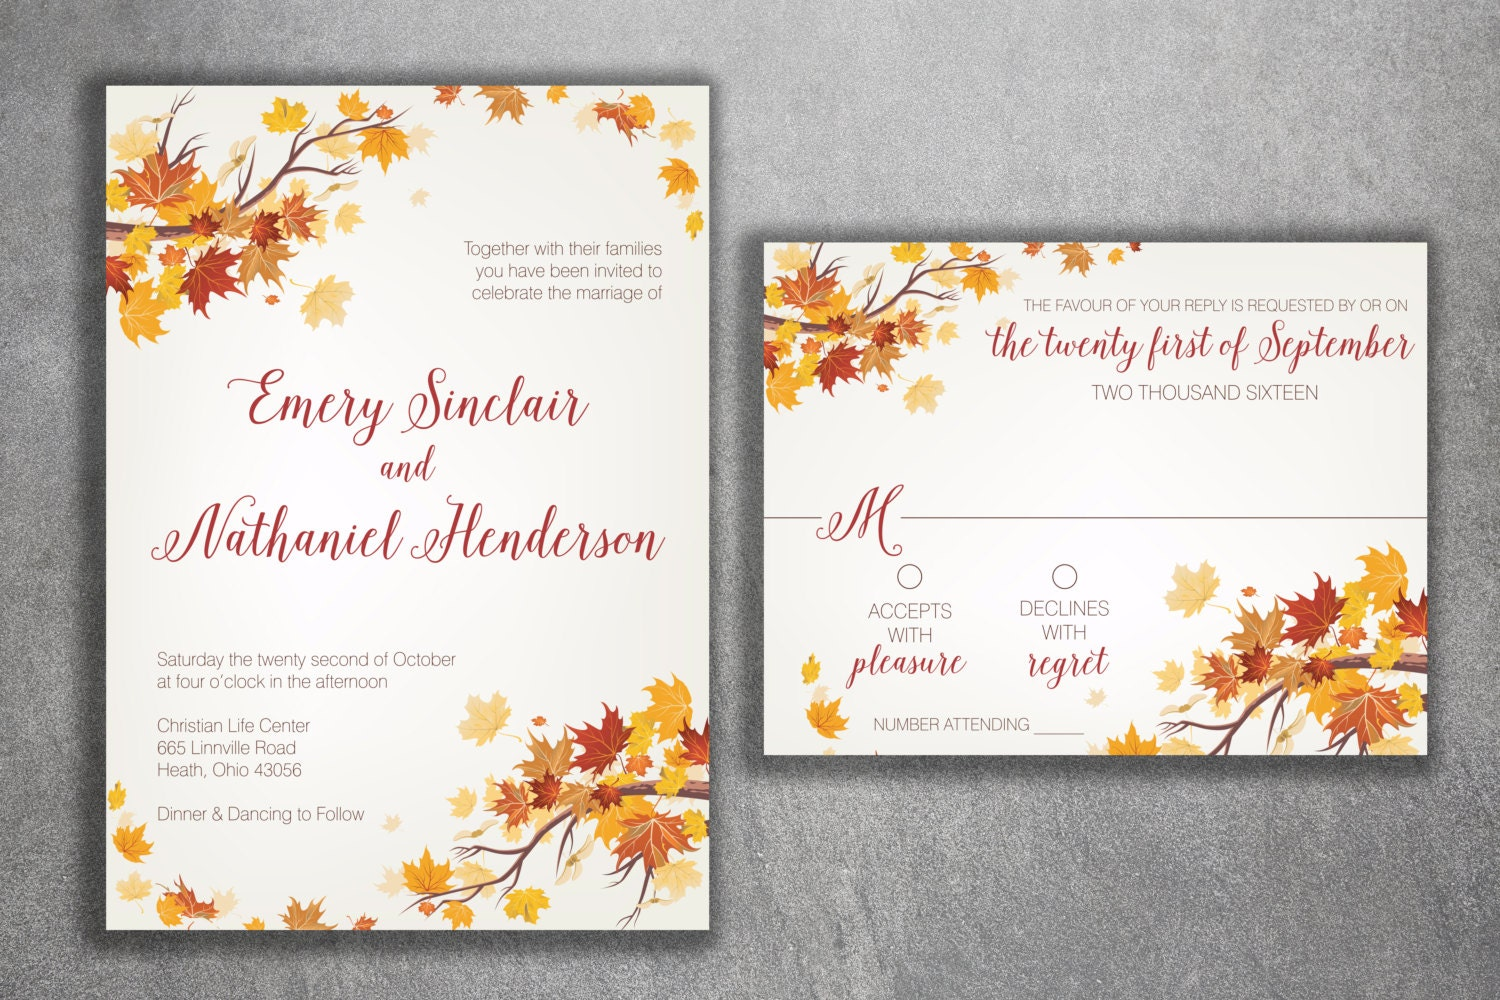 Printable Wedding Invitation Sets: Autumn Wedding Invitation Set Fall Wedding Invitation